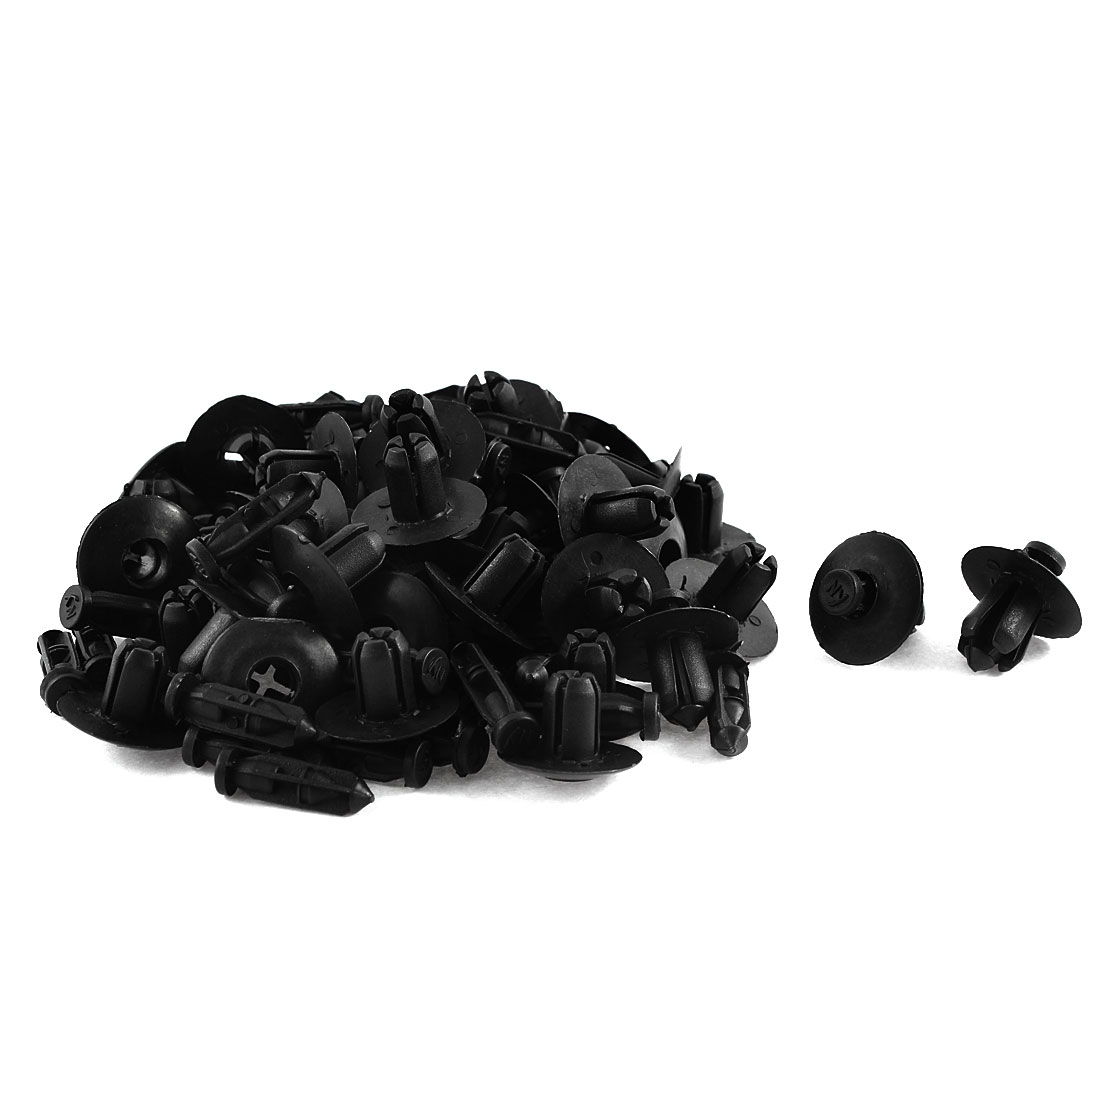 30 Pcs Black Plastic Rivet Trim Fastener Guard Clips 7.5mm x 12mm x 18mm